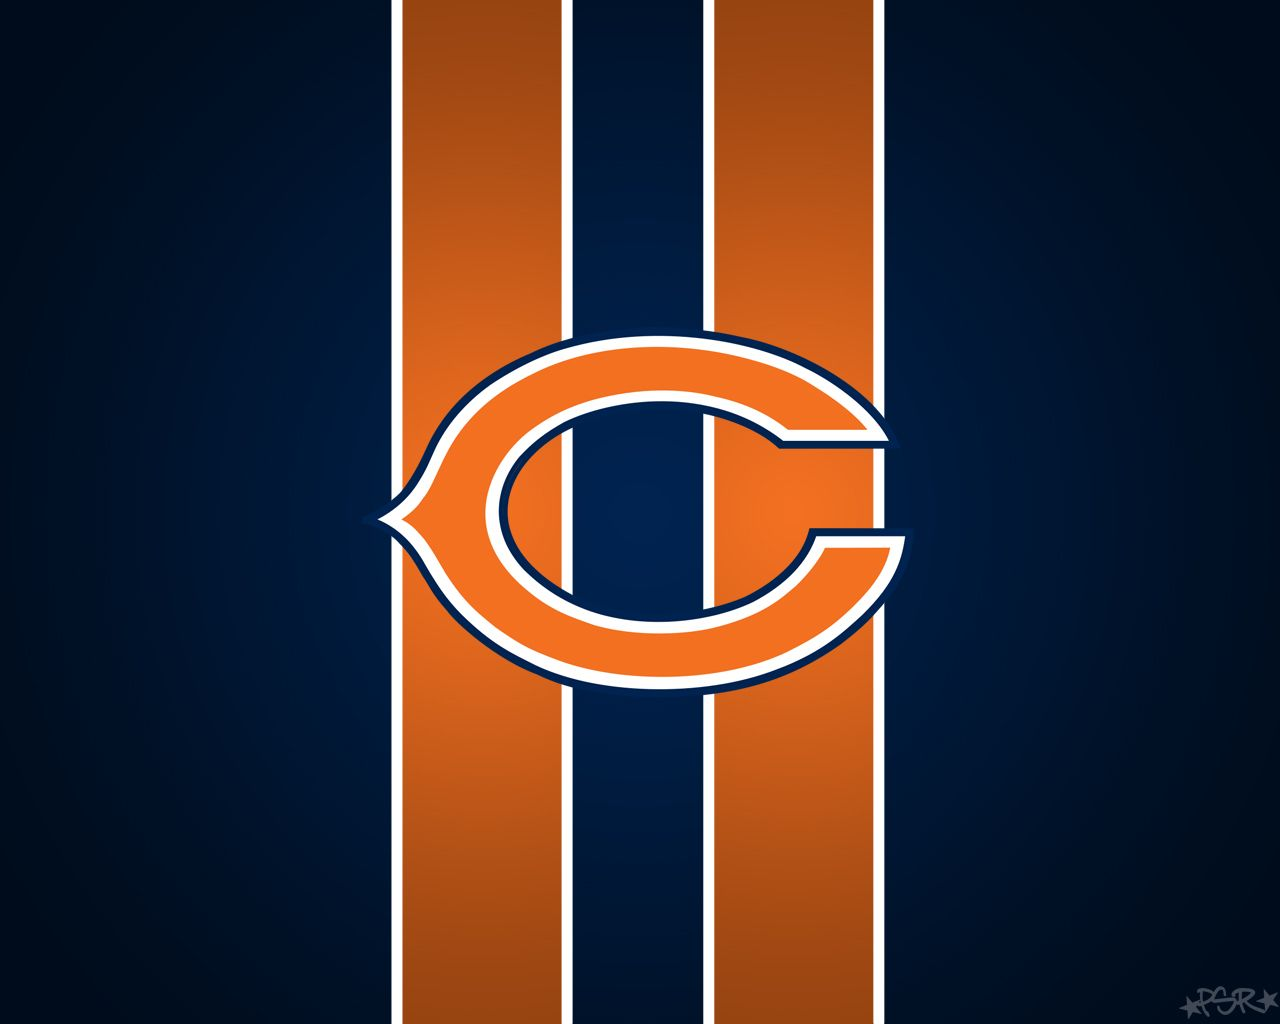 Chicago Bears Wallpapers Wallpaper | HD Wallpapers | Pinterest ...